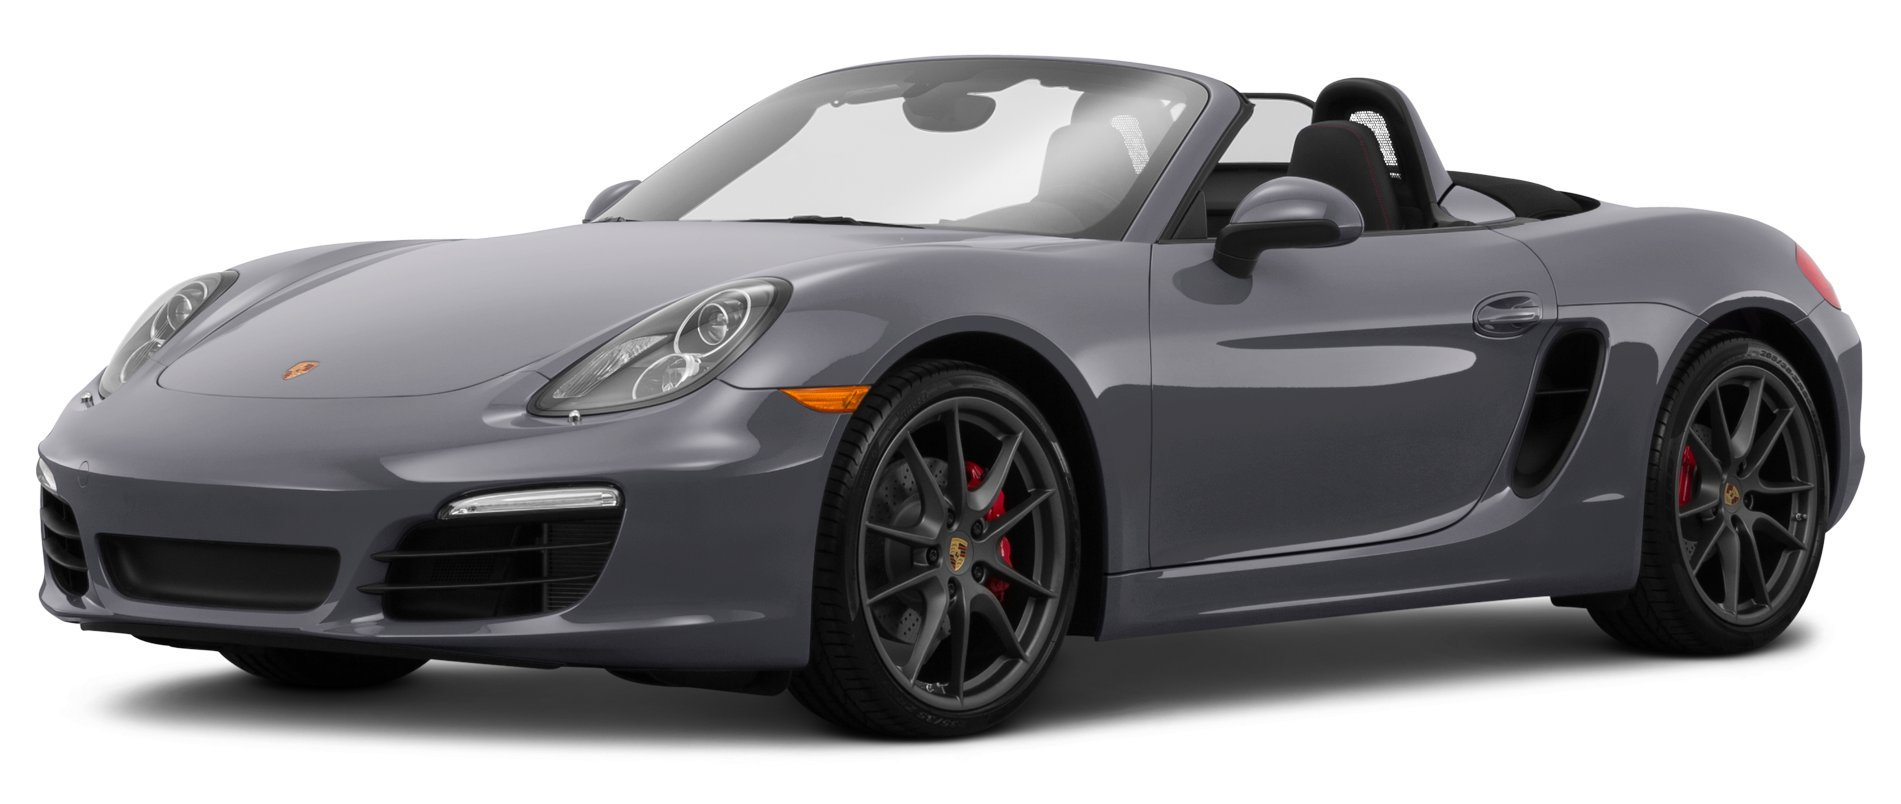 ... 2015 Porsche Boxster S, 2 Door Roadster. 2015 Chevrolet Corvette ...